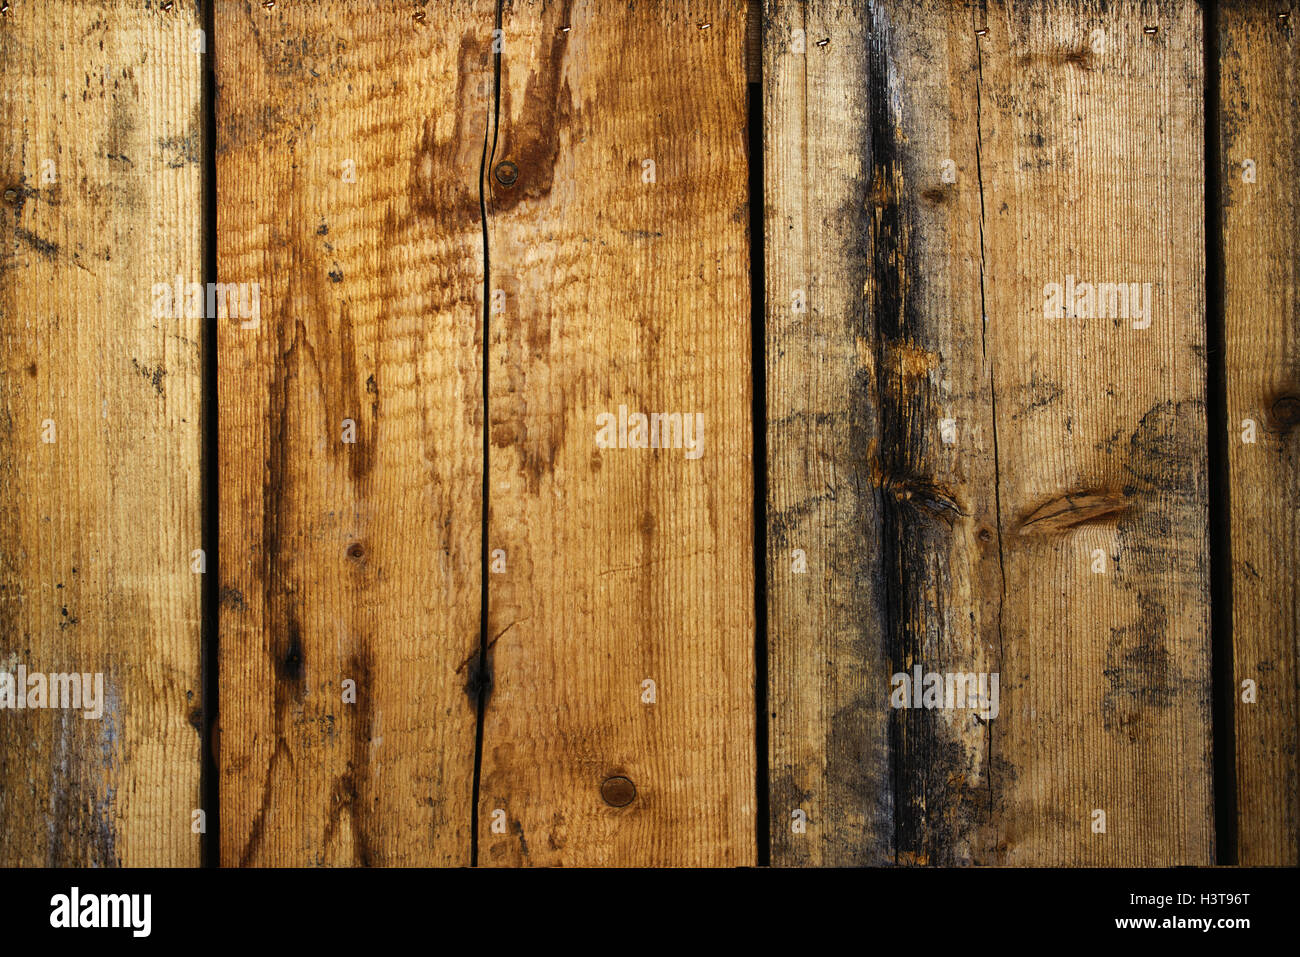 Rough wooden planks texture, old used weathered boards - Stock Image